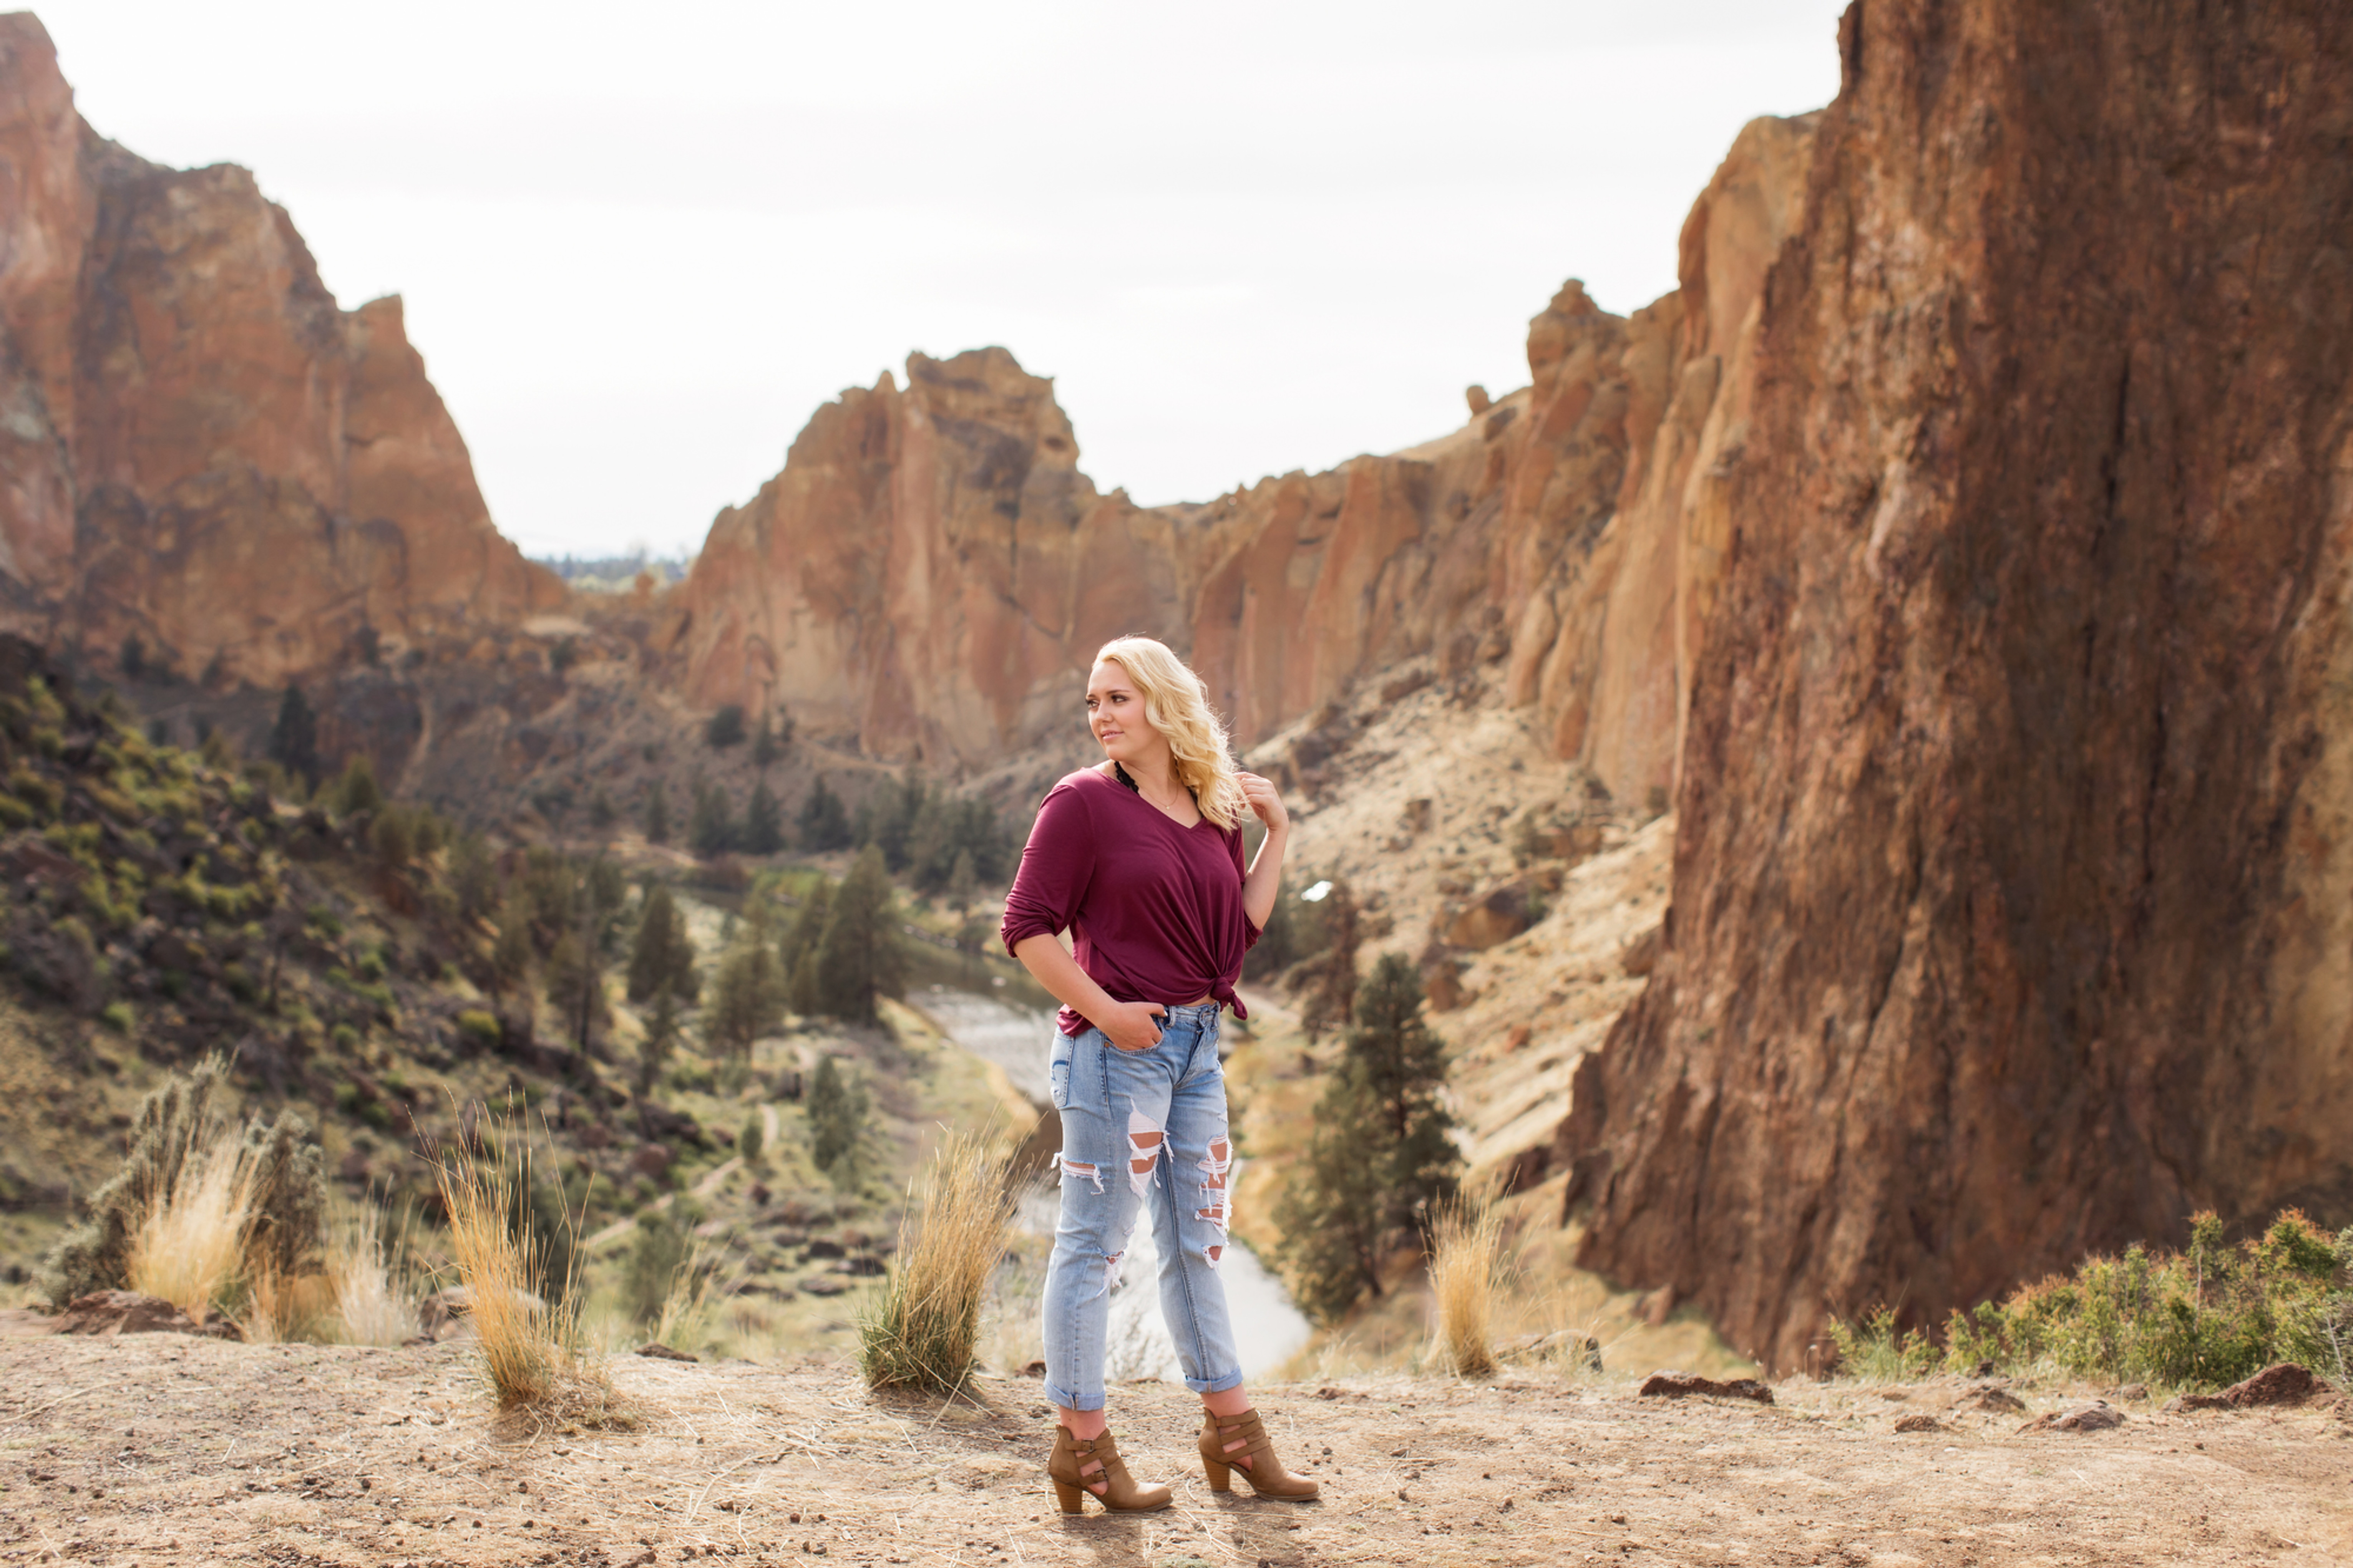 Smith Rock Session 6/16 - 4:00